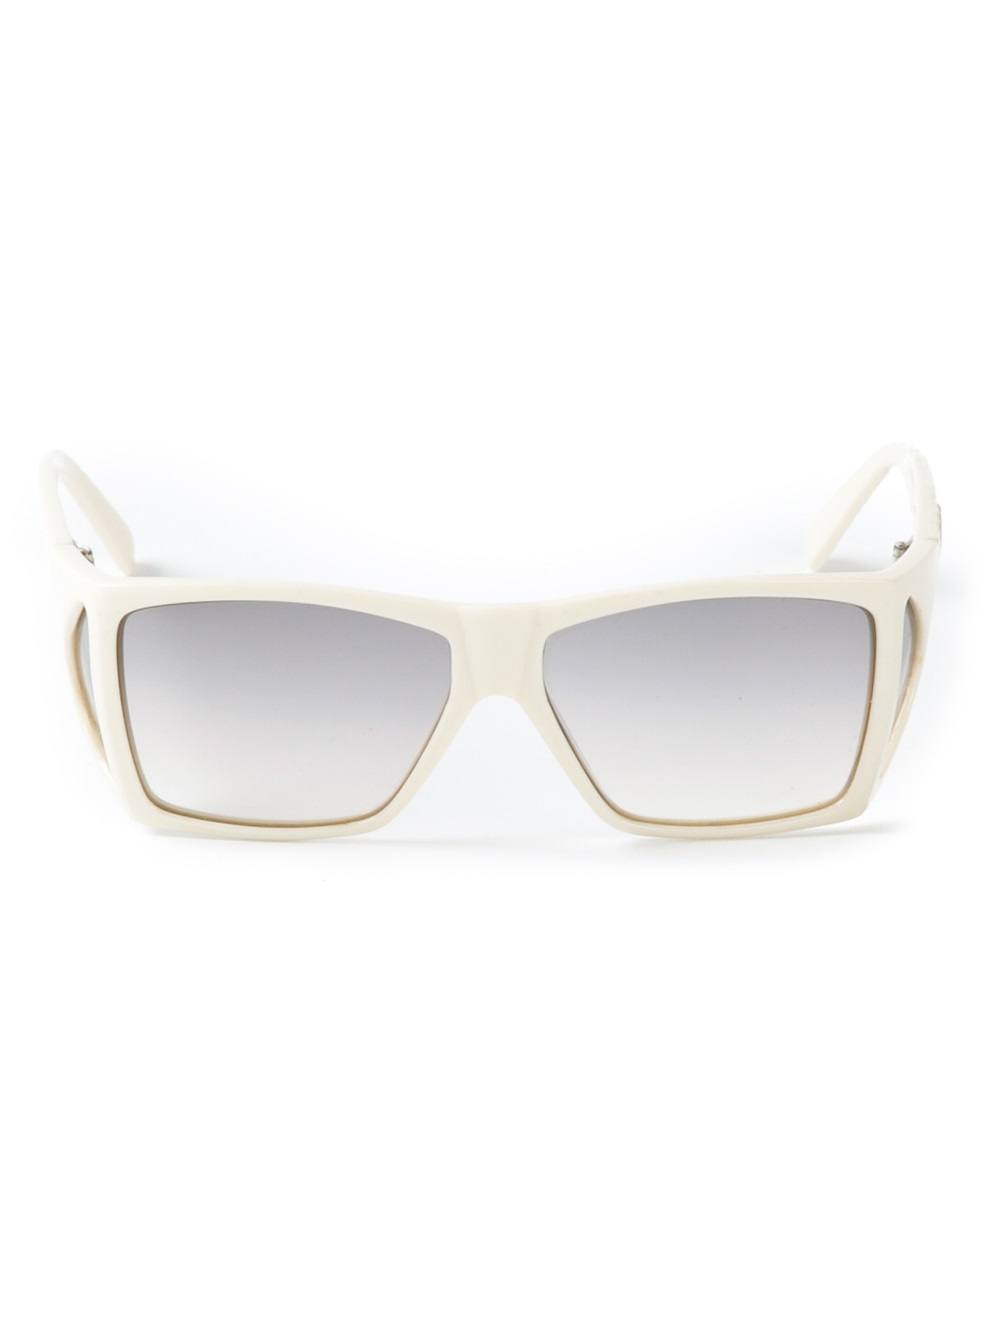 Square Frame Versace Glasses : Versace Square Frame Sunglasses in White Lyst